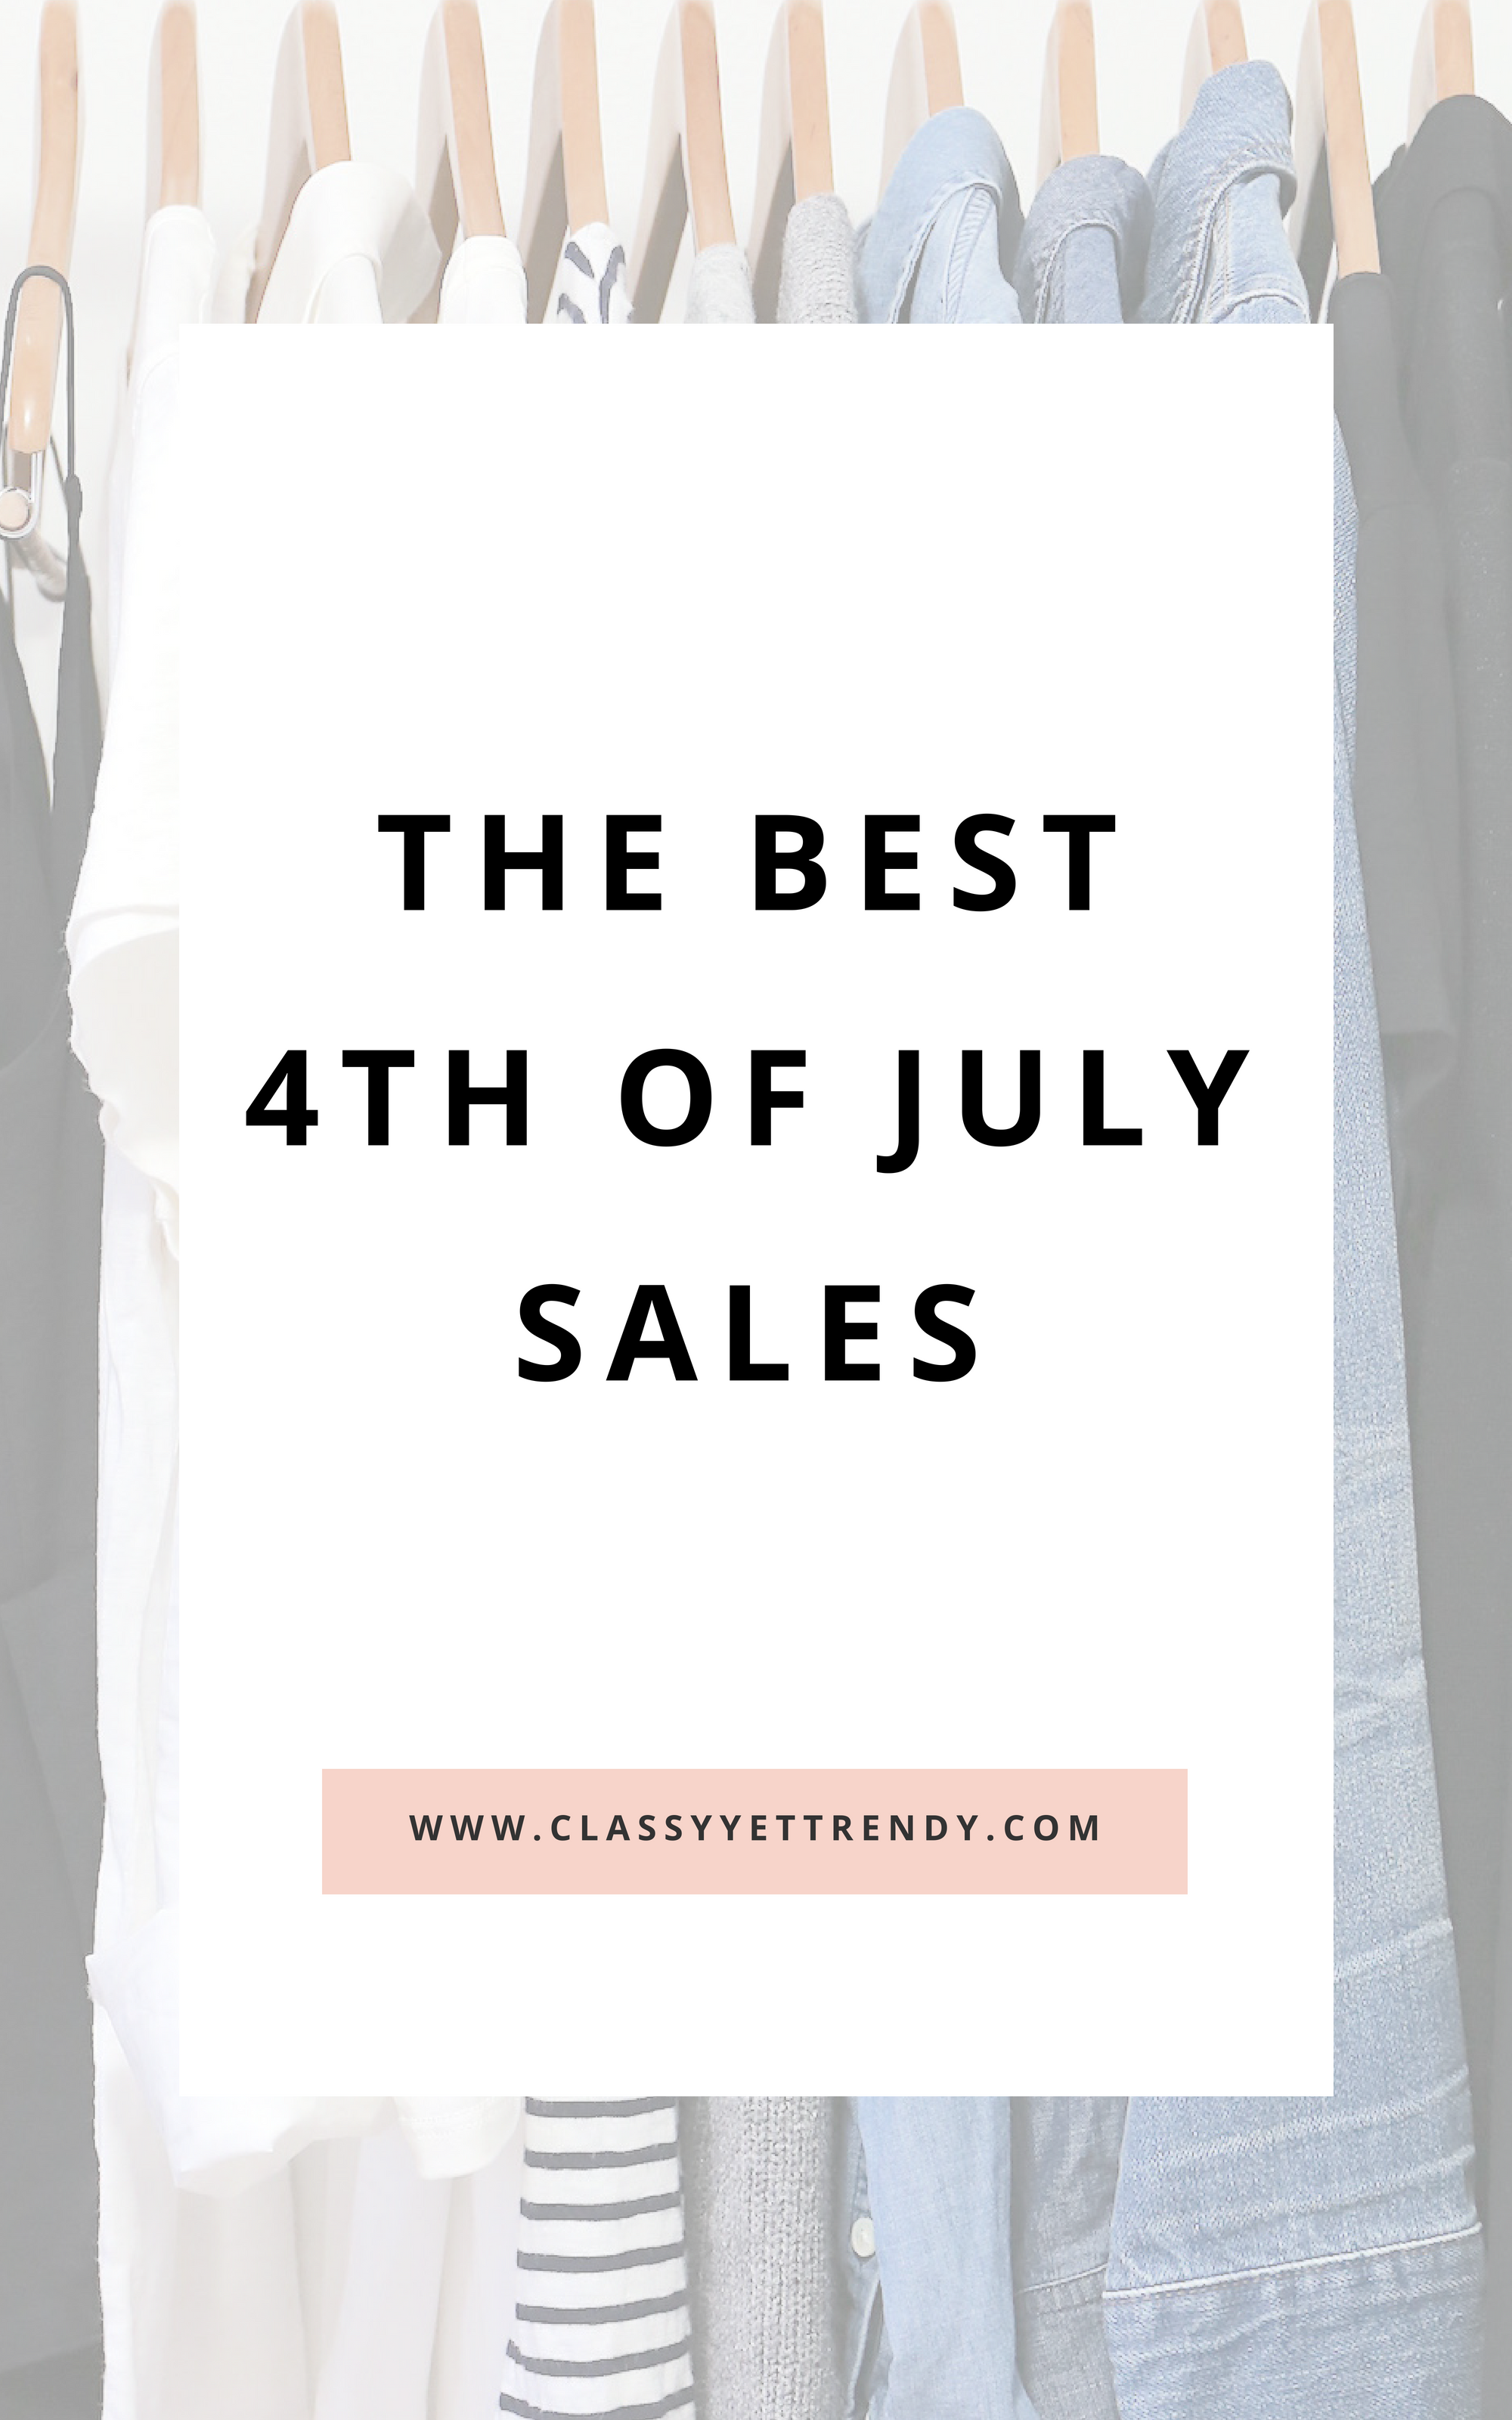 The Best 4th of July Sales